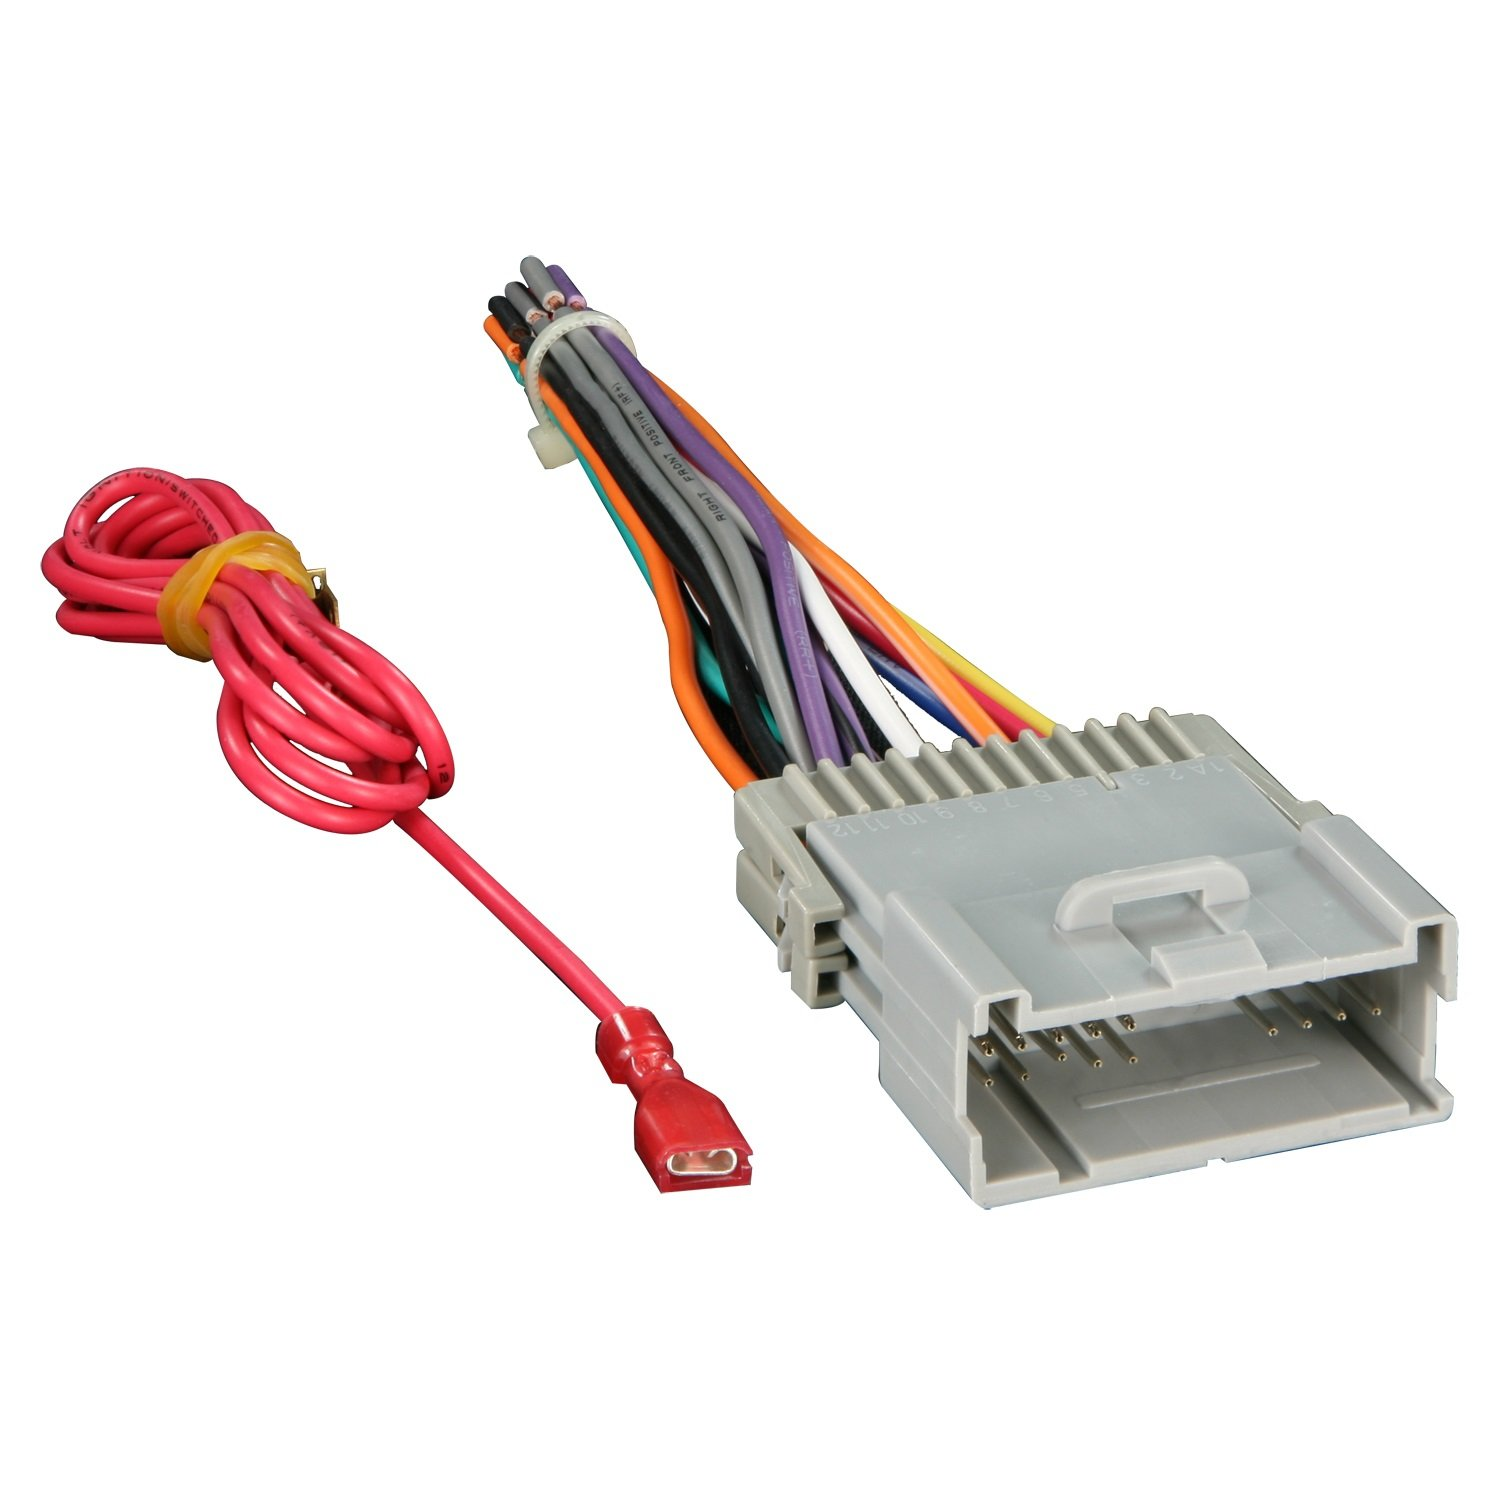 61eewxp9orL._SL1500_ amazon com metra 70 2003 radio wiring harness for gm 98 08 jvc car stereo wiring harness at readyjetset.co